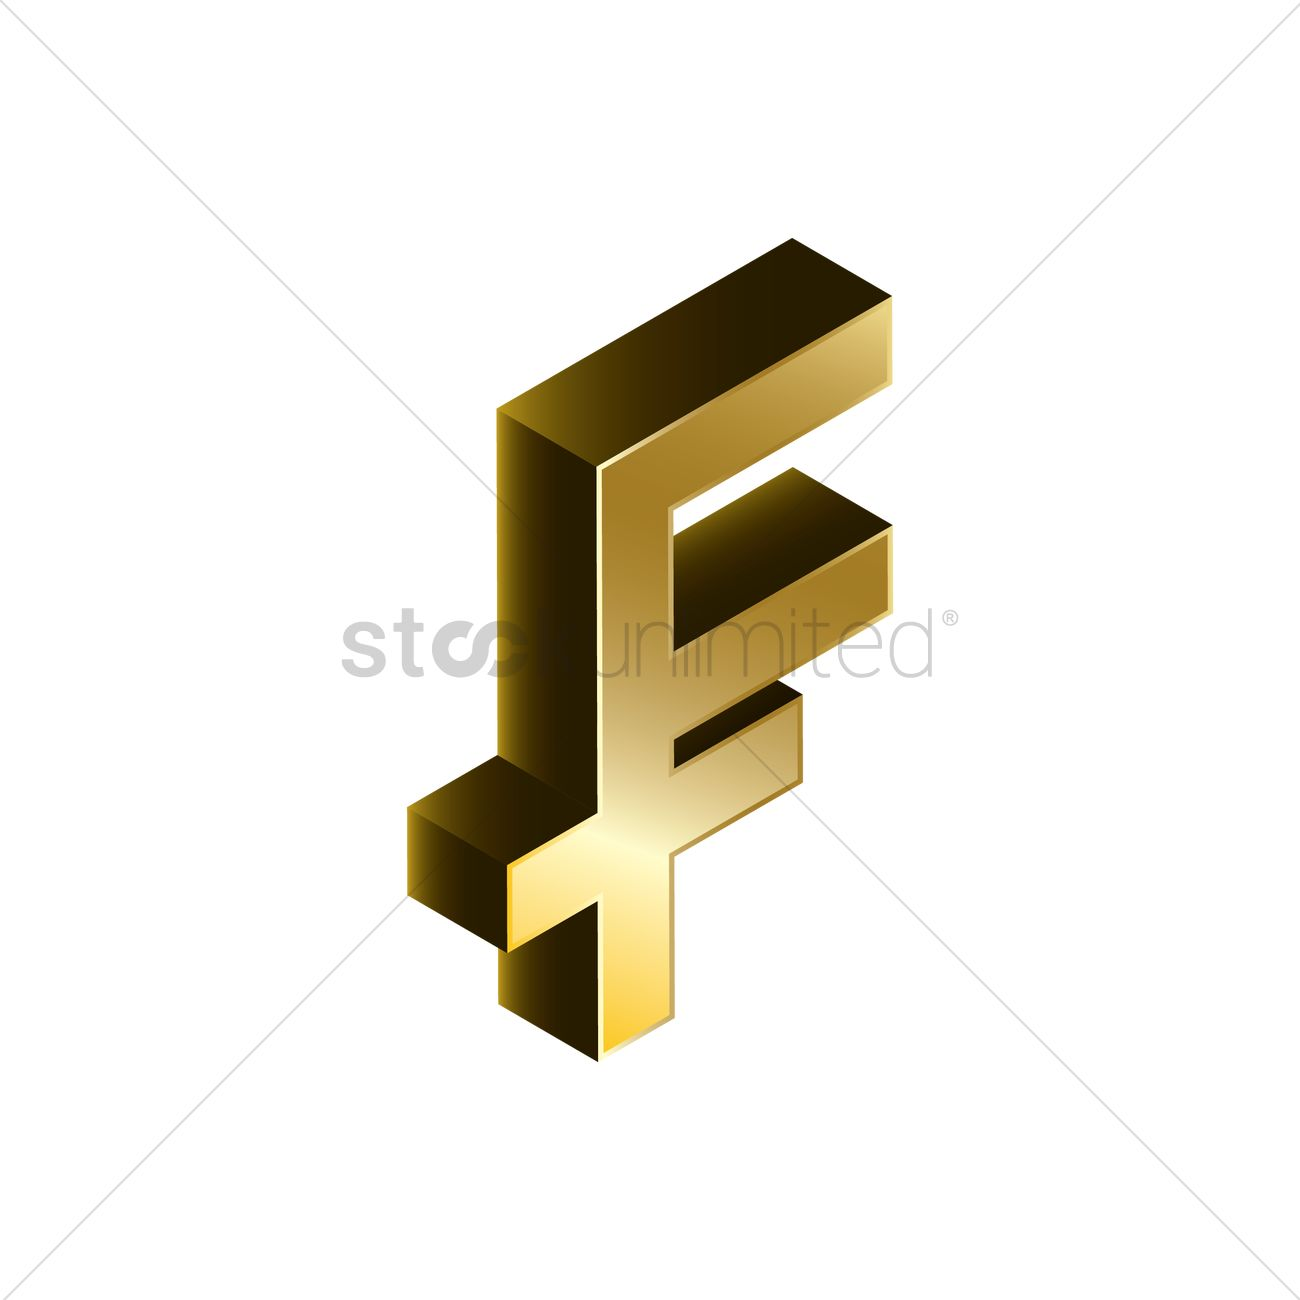 3d Franc Currency Symbol Vector Image 1827926 Stockunlimited